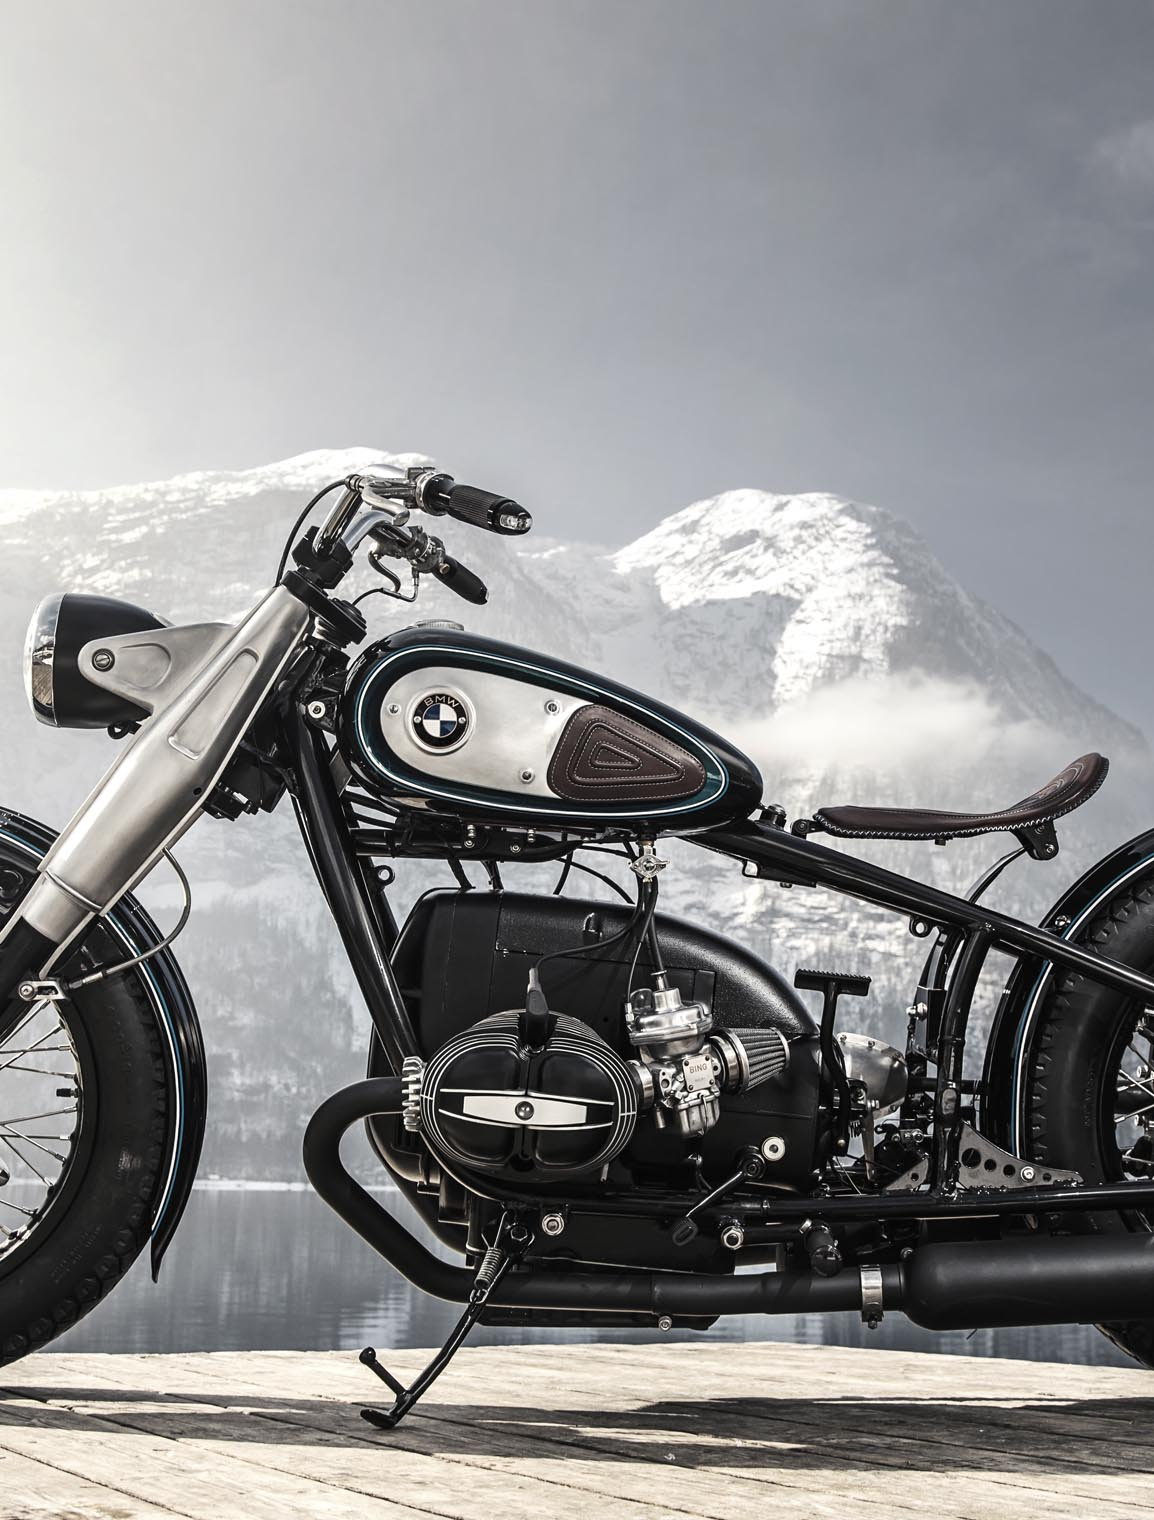 BMW_bobber_custom_motorcycle_lake_mountains_austria_side2